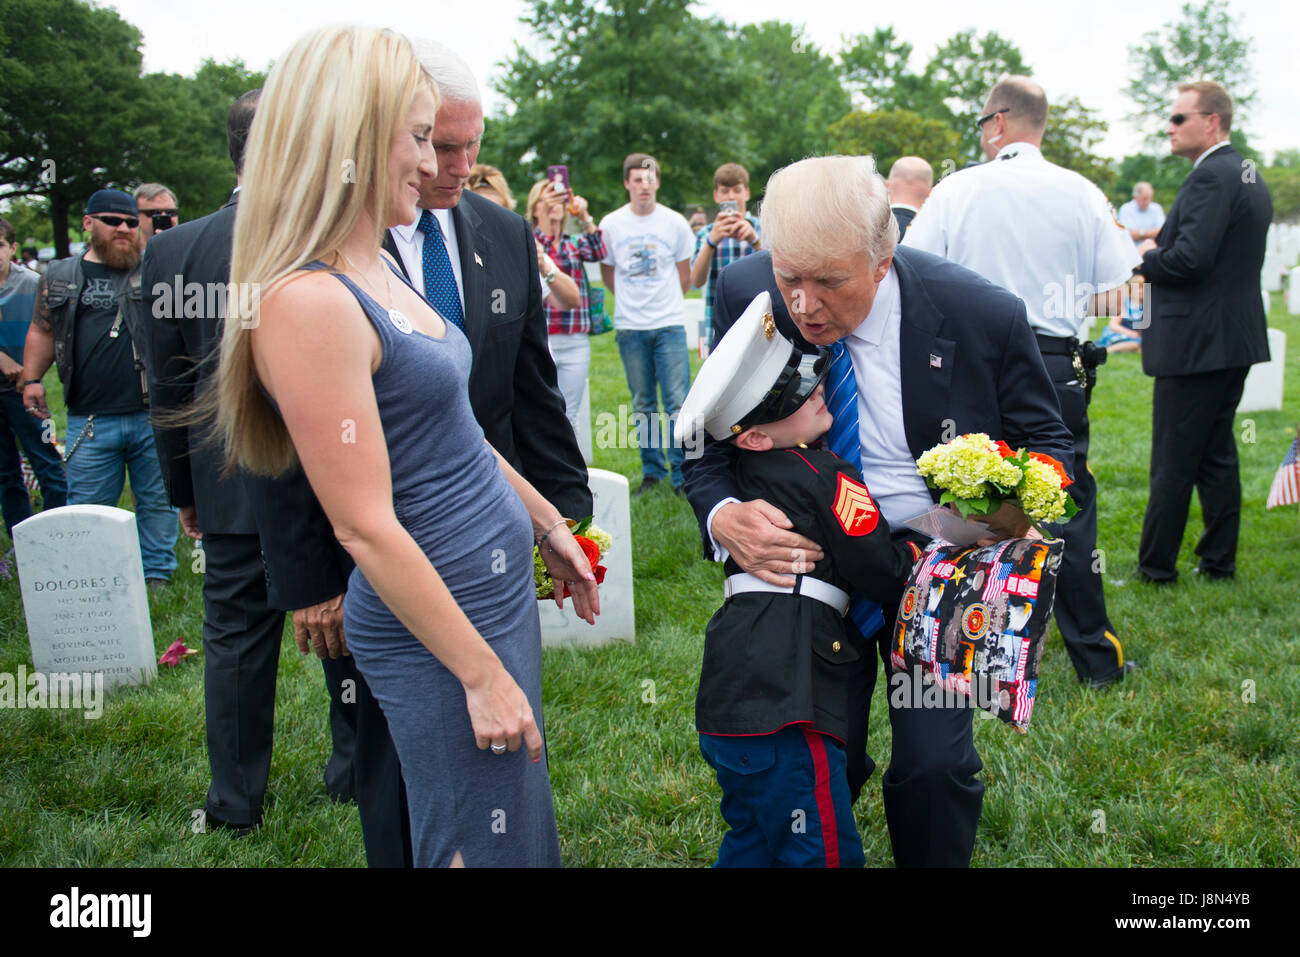 Arlington, USA. 29th May, 2017. U.S. President Donald Trump is hugged by Christian Jacobs, 6, dressed in a Marine - Stock Image